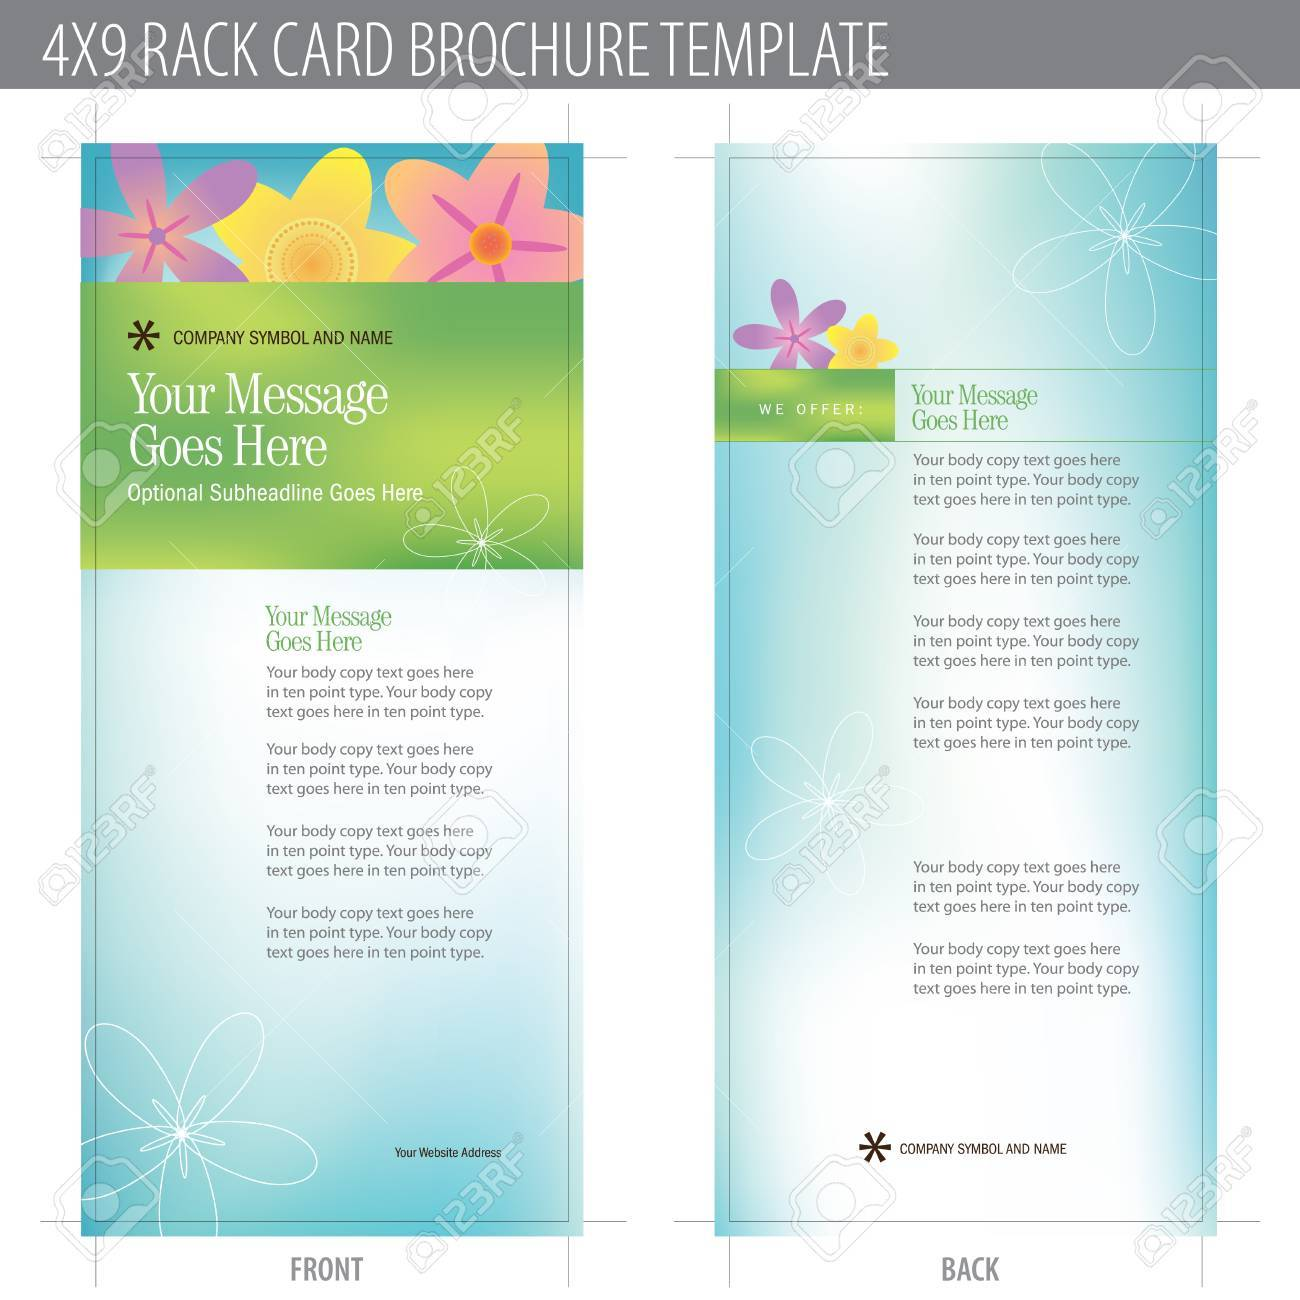 4x9 Rack Card Brochure Template (includes cropmarks, bleeds, and keyline - elements in layers) More in portfolio Stock Vector - 4775939